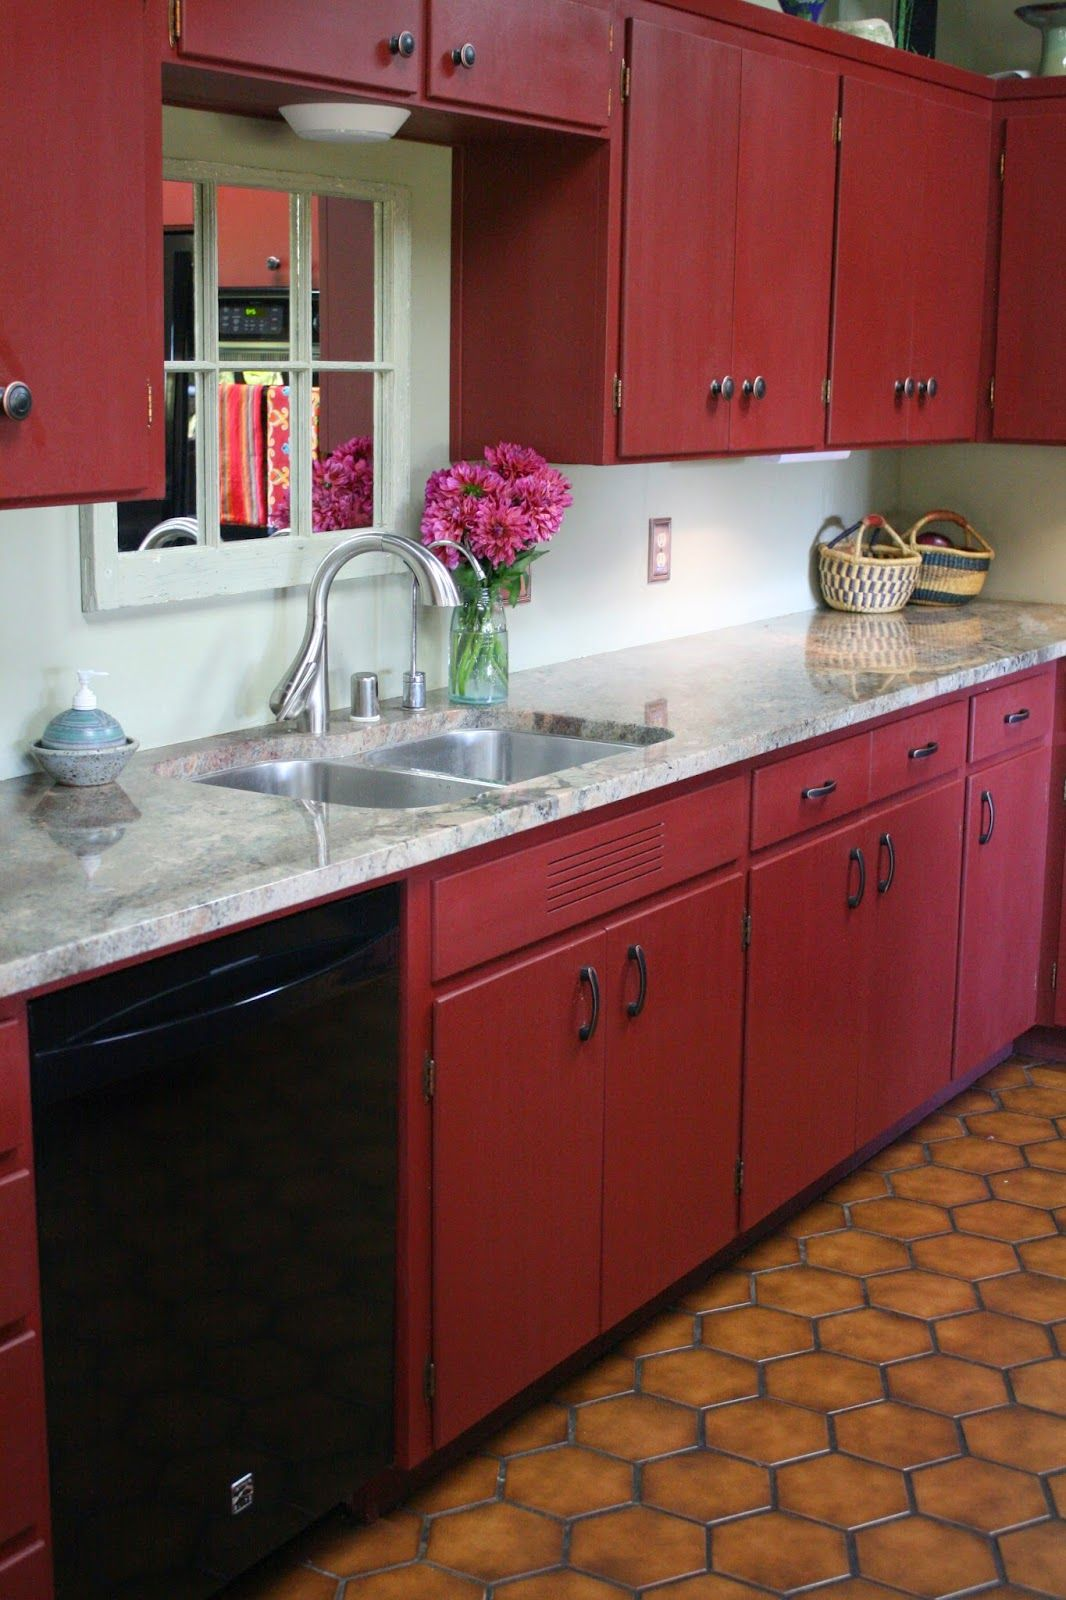 Reloved Rubbish Primer Red Chalk Paint® Kitchen Cabinets Inspiration Chalk Painting Kitchen Cabinets 2018